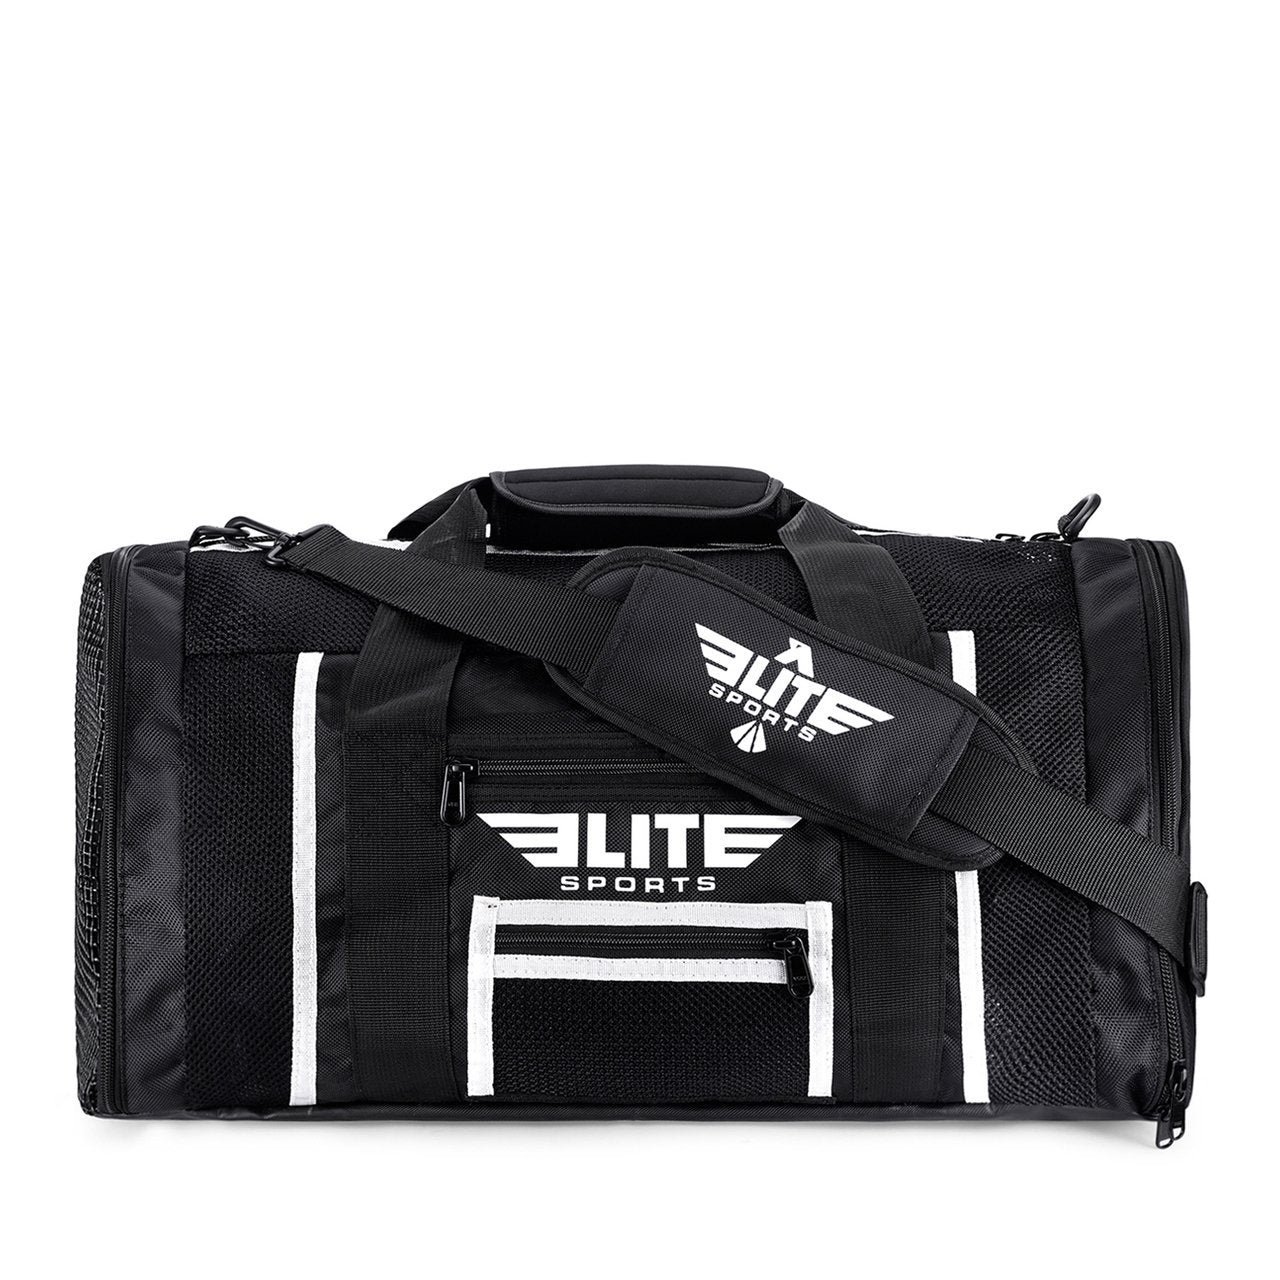 Load image into Gallery viewer, Elite Sports Mesh Black Medium Boxing Gear Gym Bag